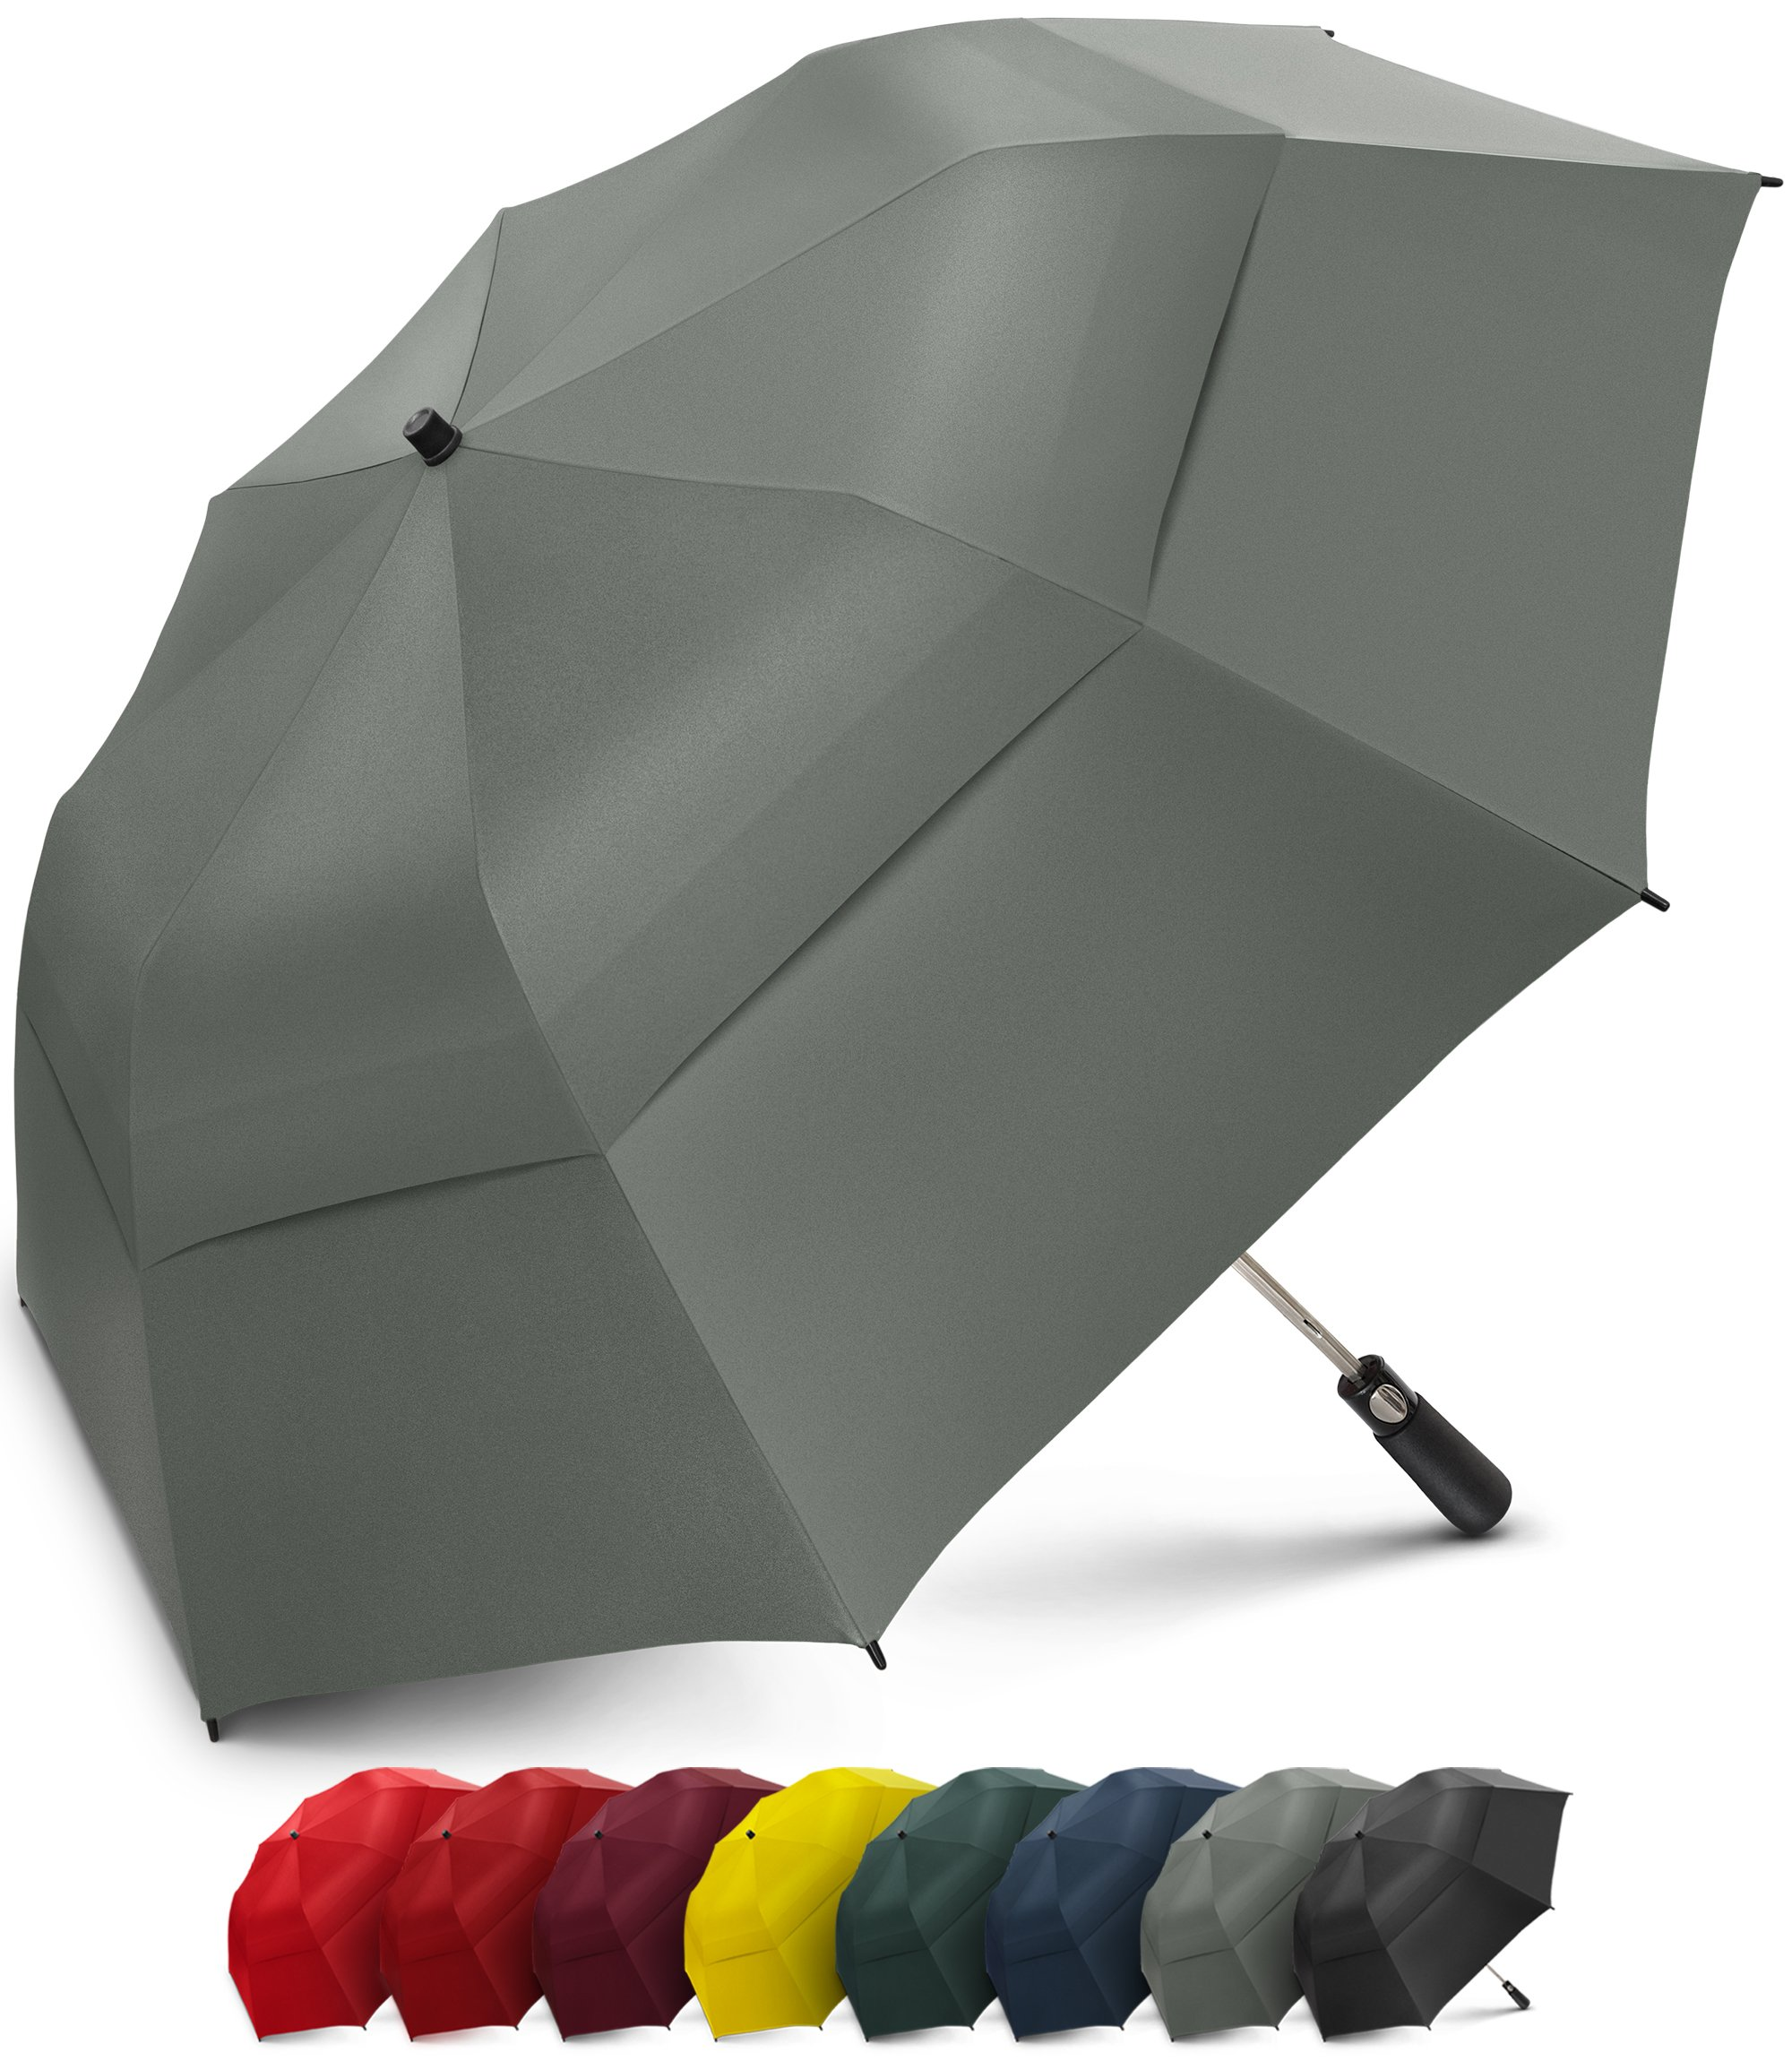 EEZ-Y 58 Inch Portable Golf Umbrella Large Windproof Double Canopy - Automatic Open Strong Oversized Rain Umbrellas by EEZ-Y